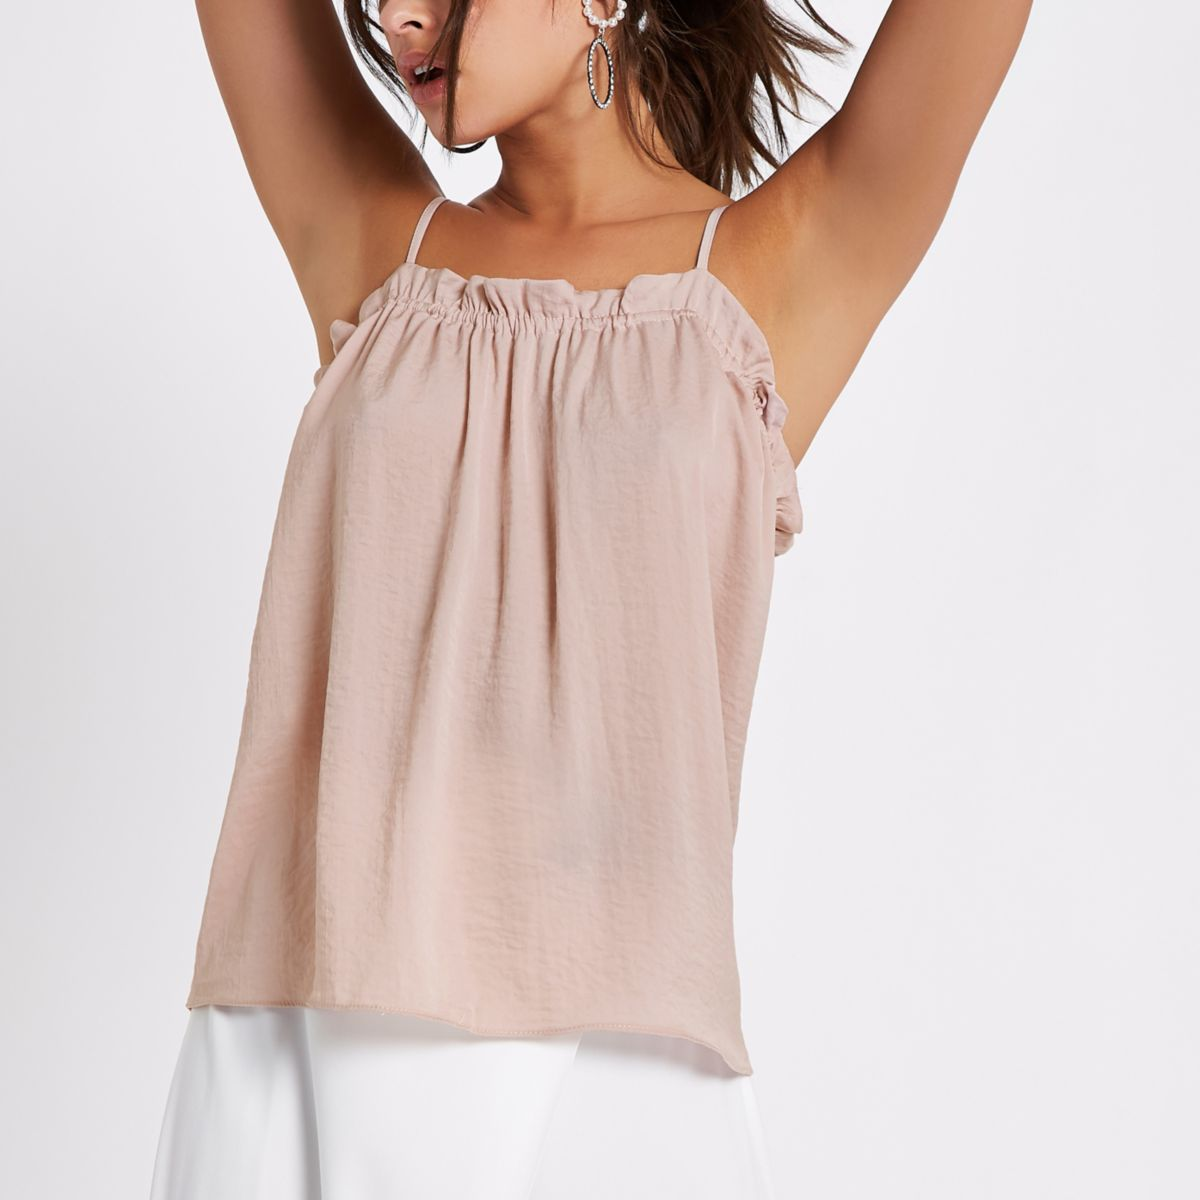 Find light pink cami at ShopStyle. Shop the latest collection of light pink cami from the most popular stores - all in one place.